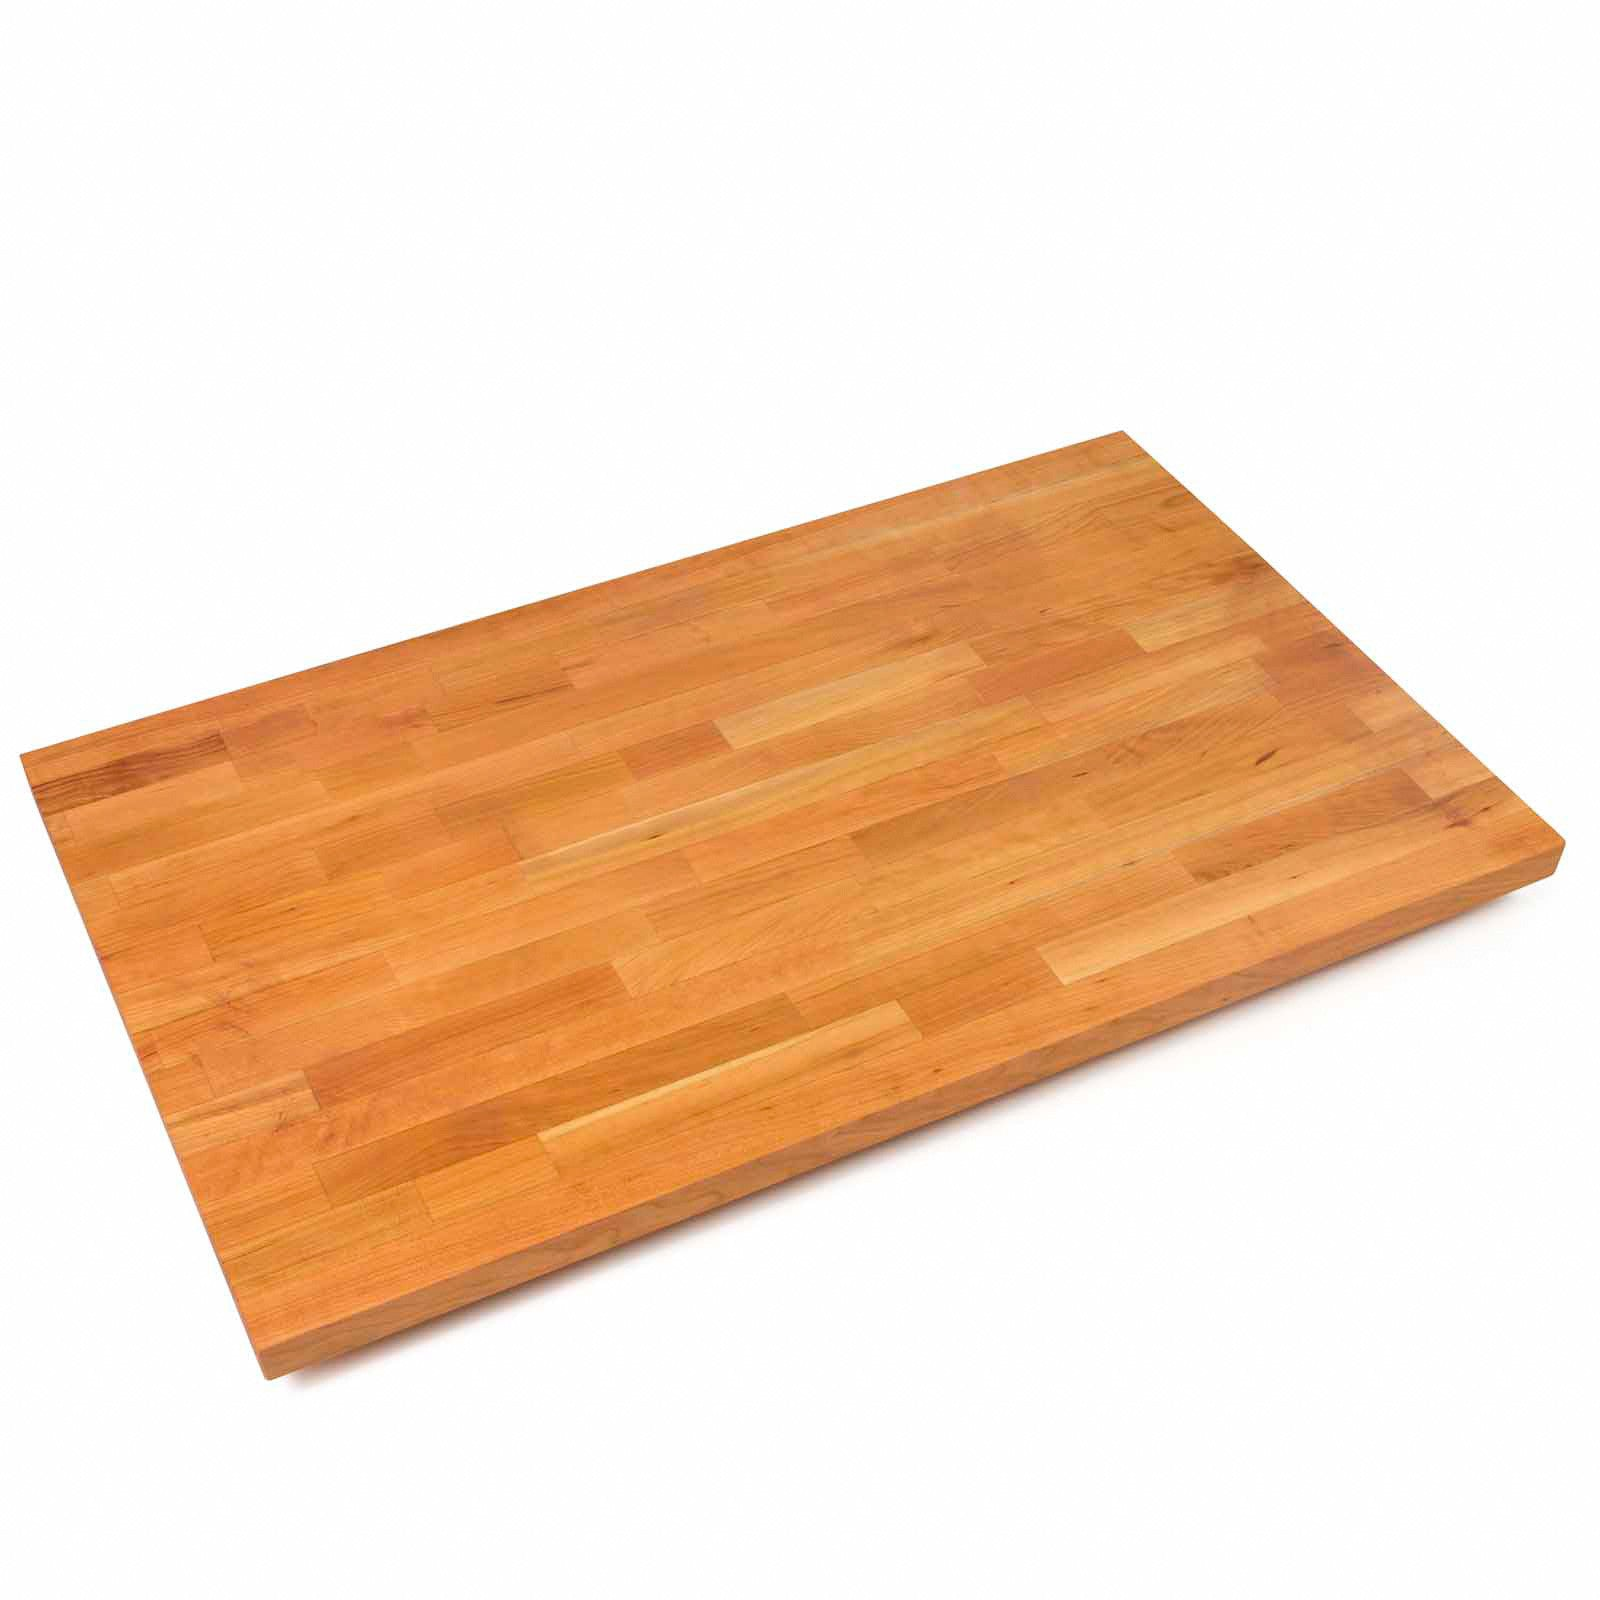 "John Boos 1 1/2"" Thick Blended Cherry Butcher Block Countertop - 30"" Wide"